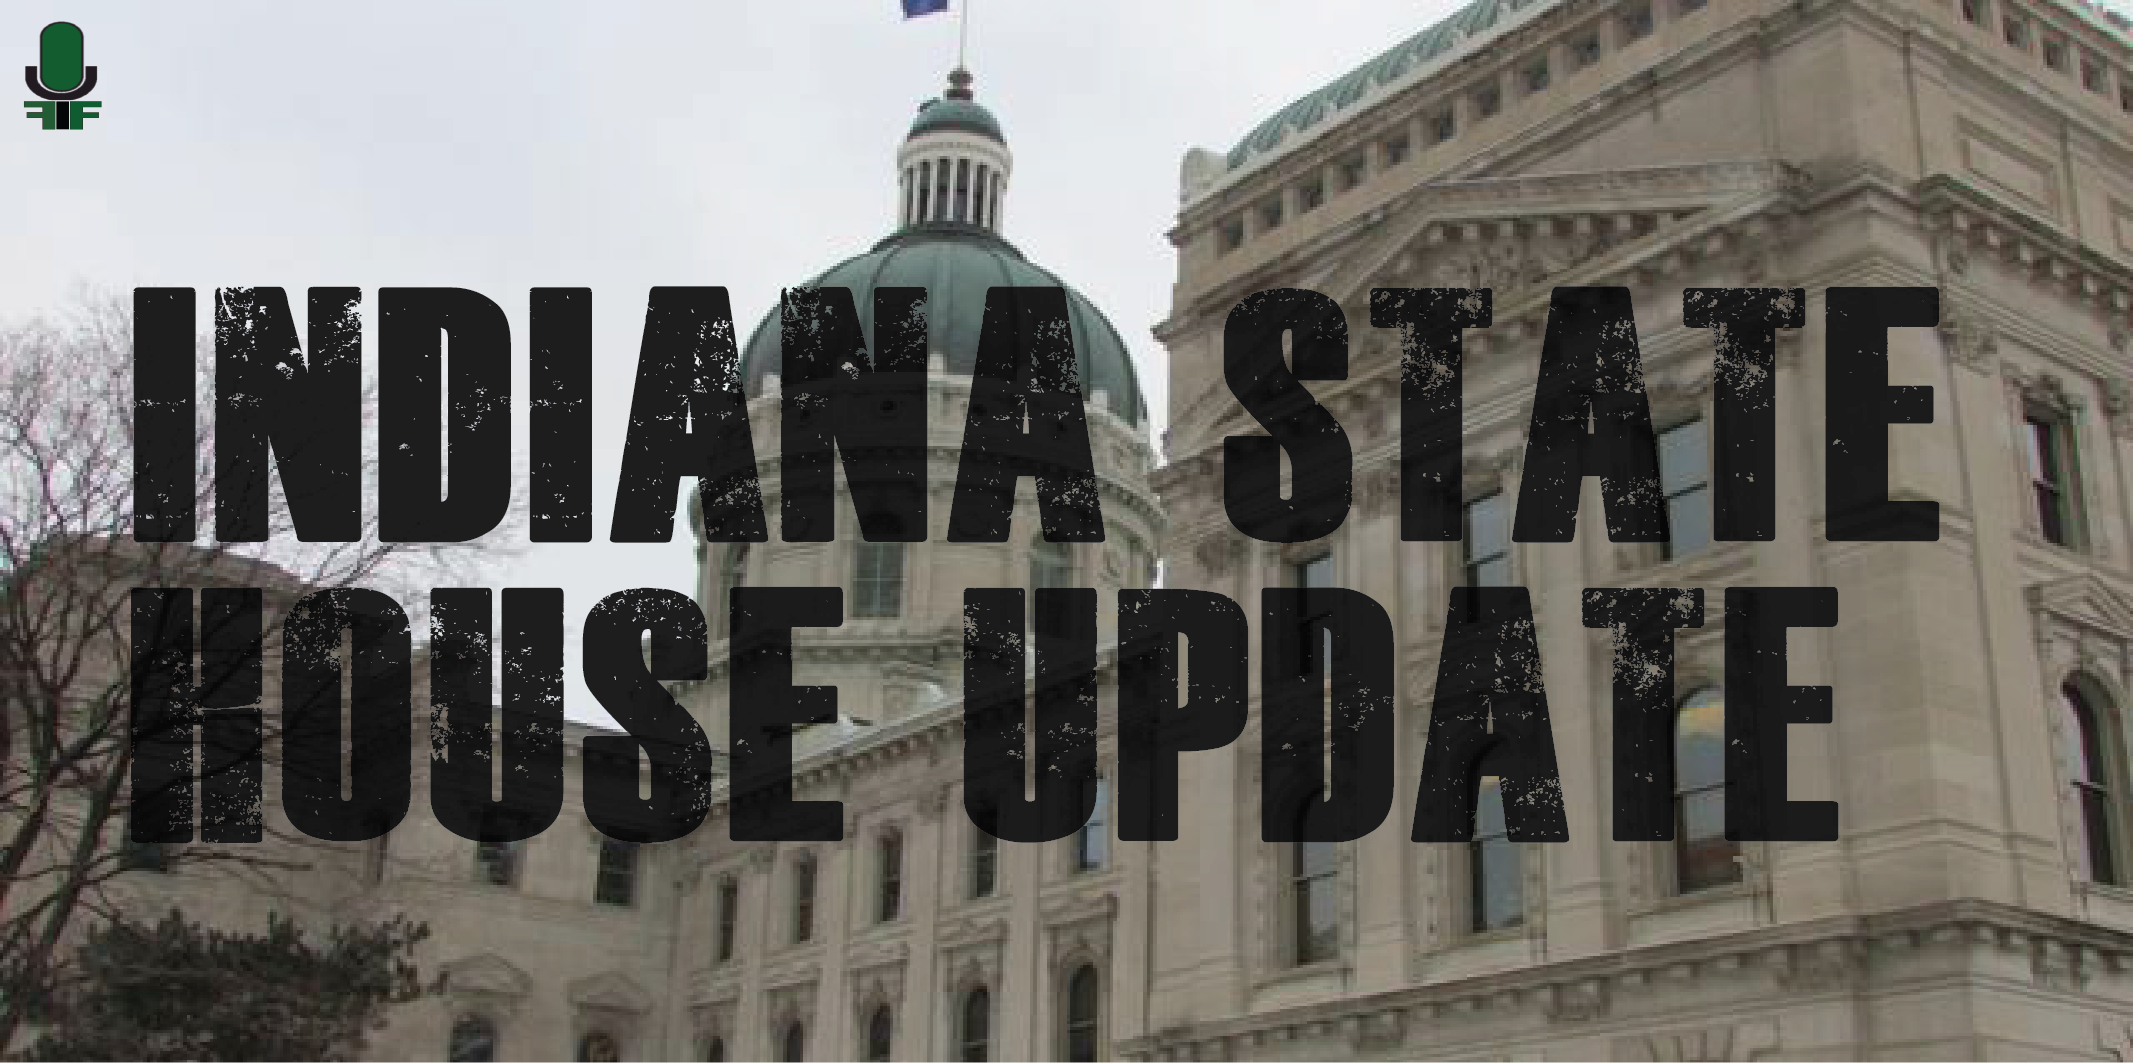 State House Update for March 4, 2019